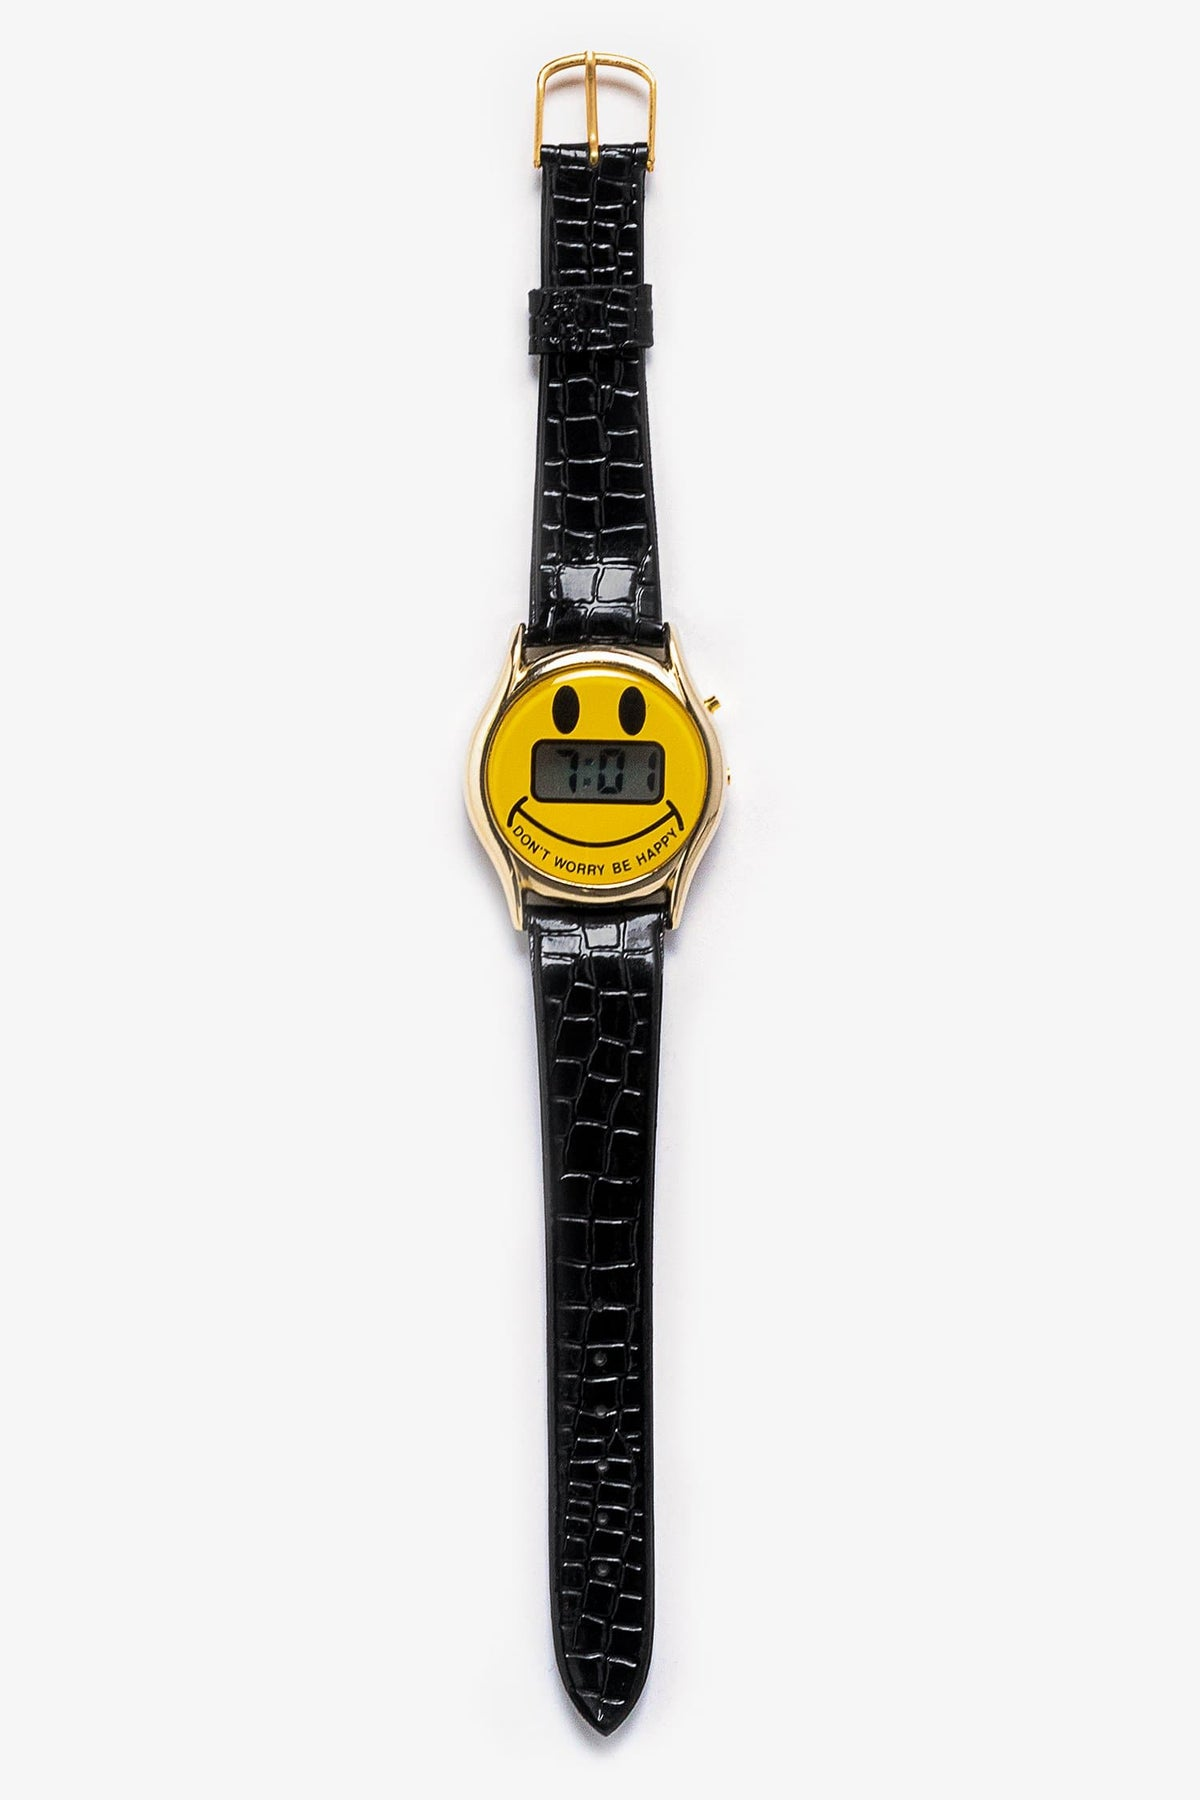 WCHRDWBH - Don't Worry Be Happy Men's Watch